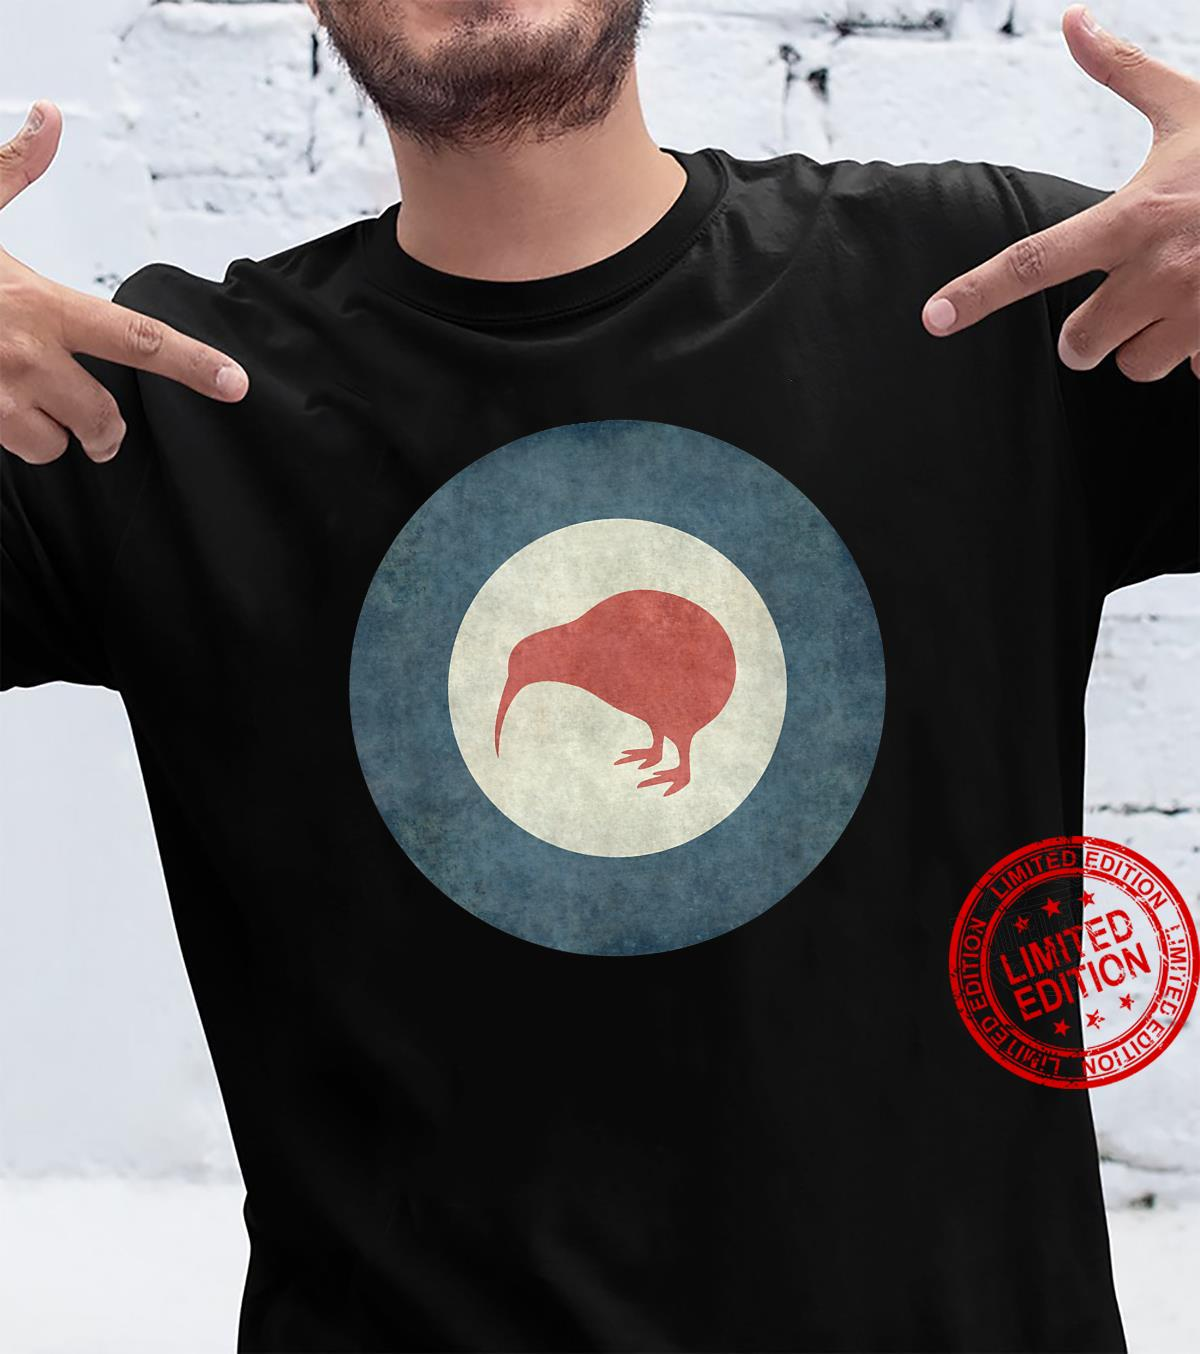 Stylized air force Roundel of New Zealand Grungy Shirt